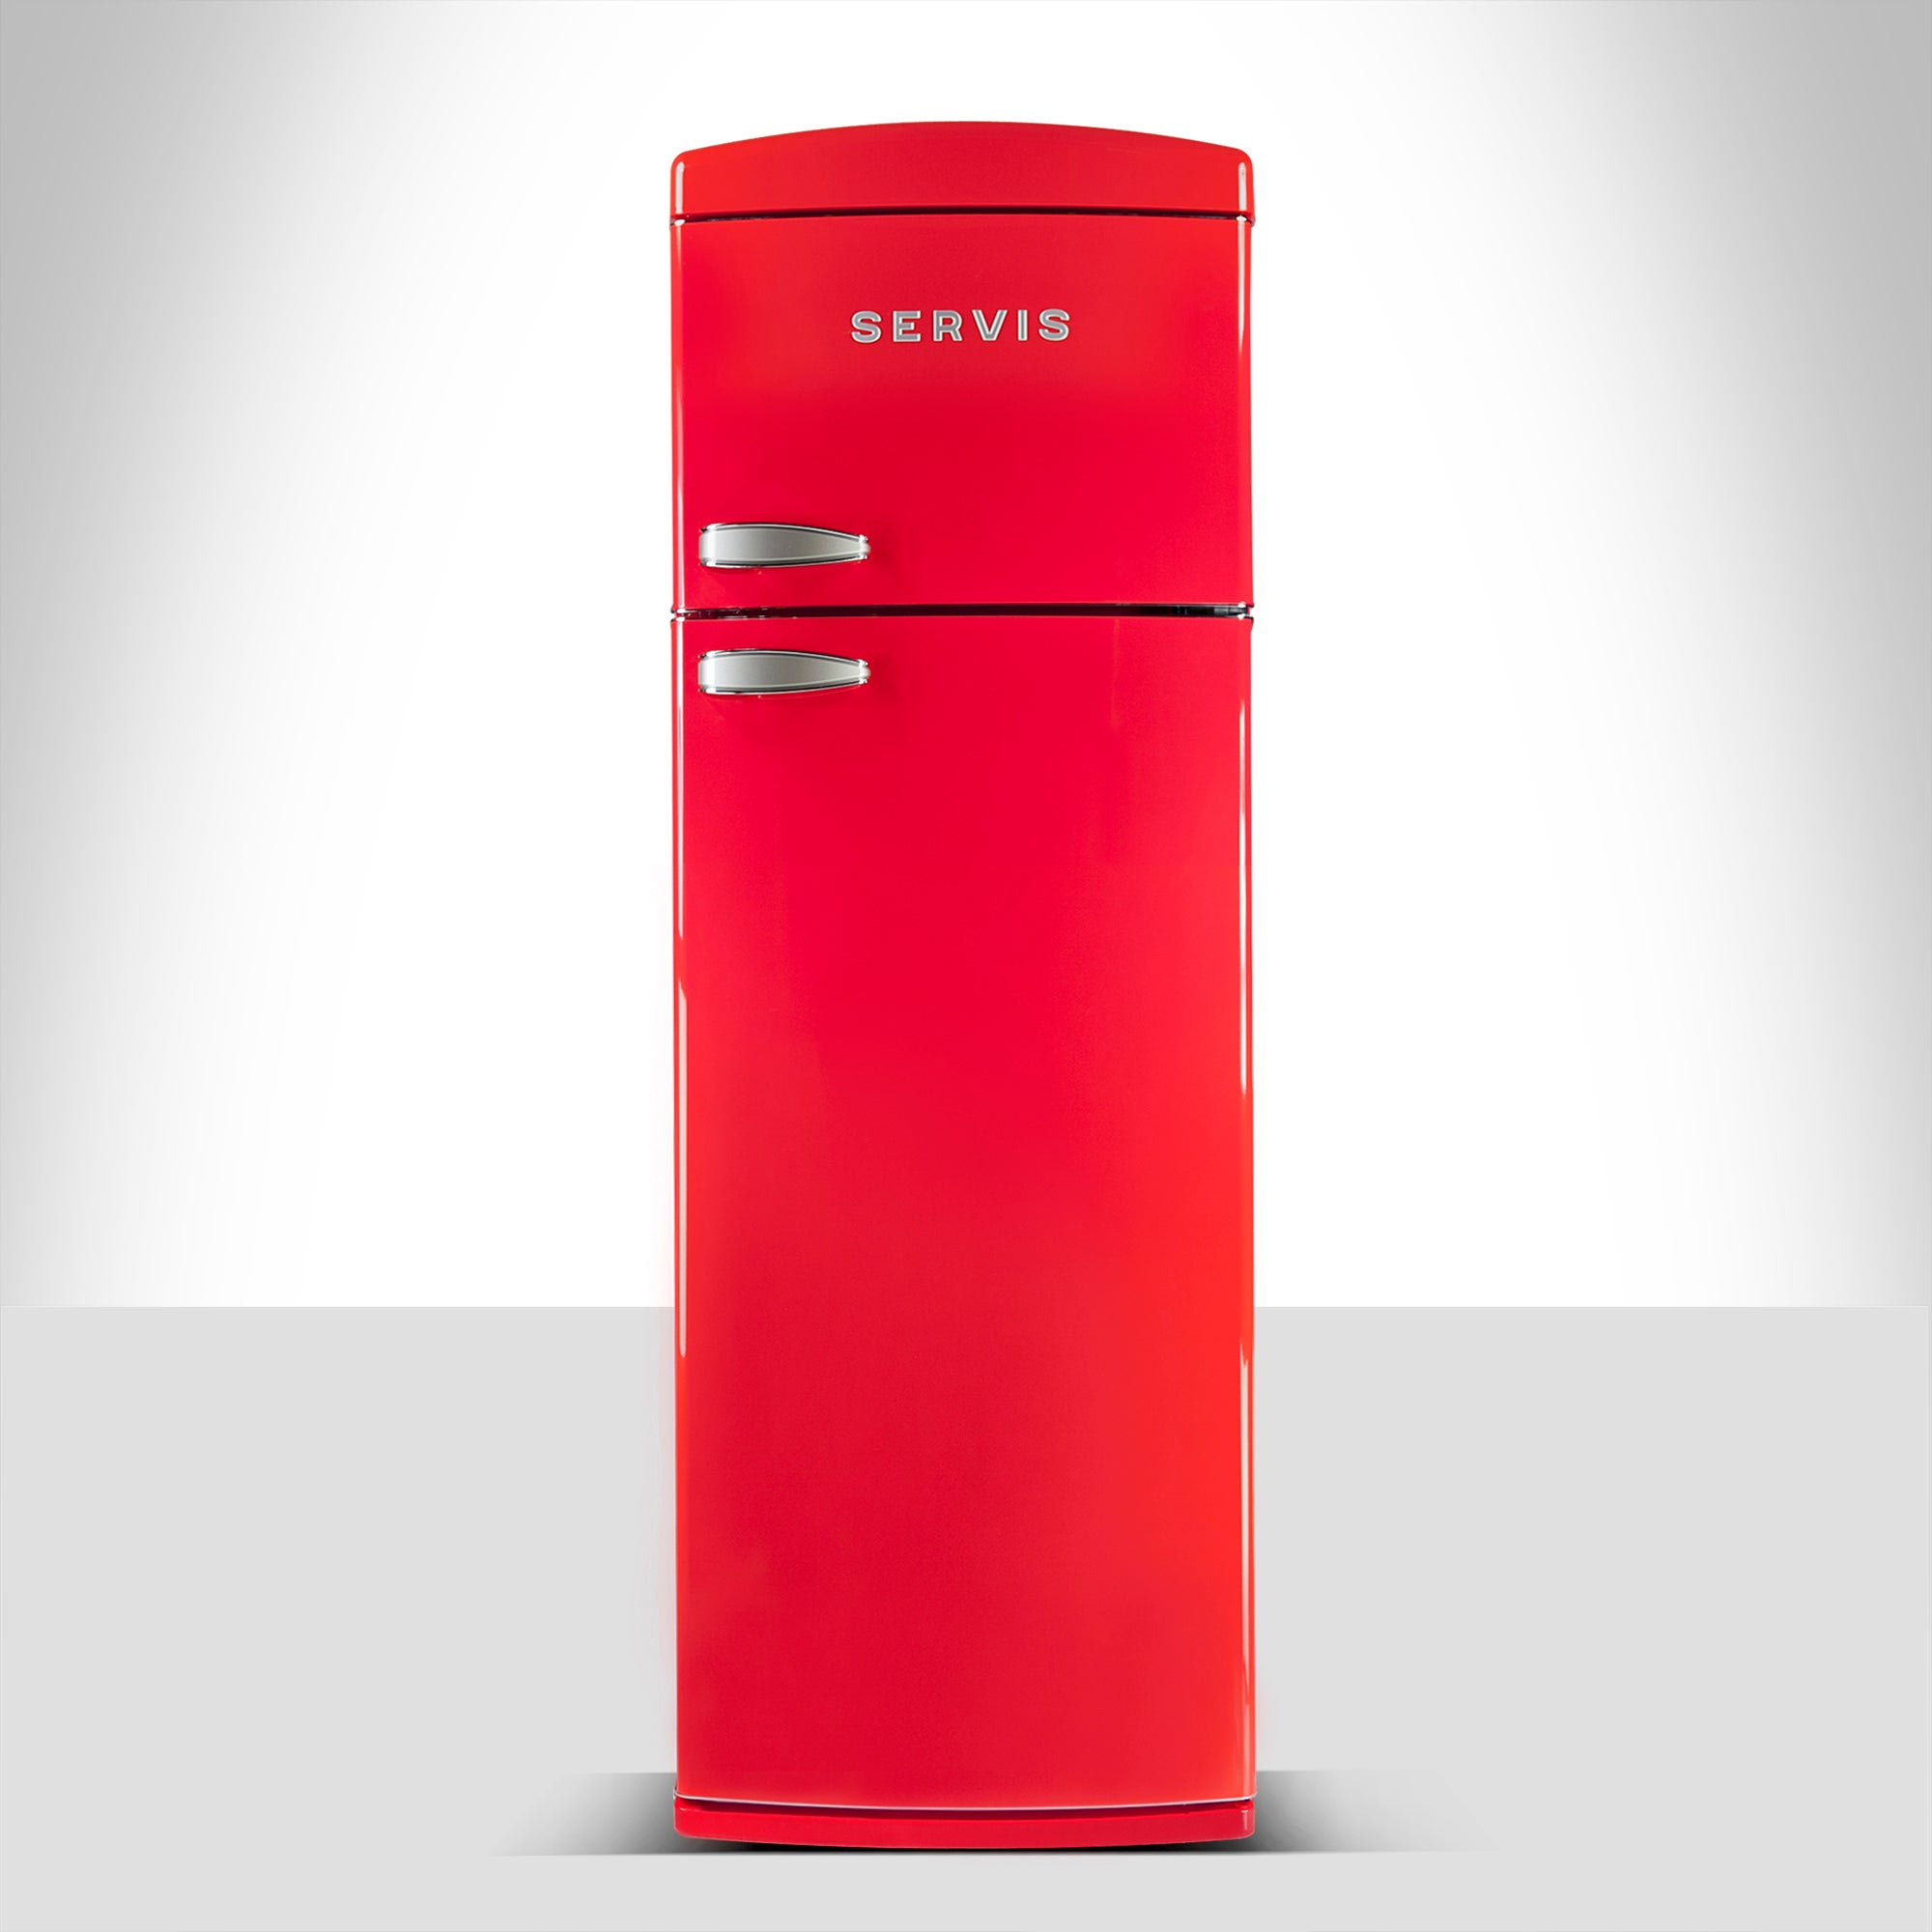 Servis T60170R Red Retro Style Topmount Fridge Freezer